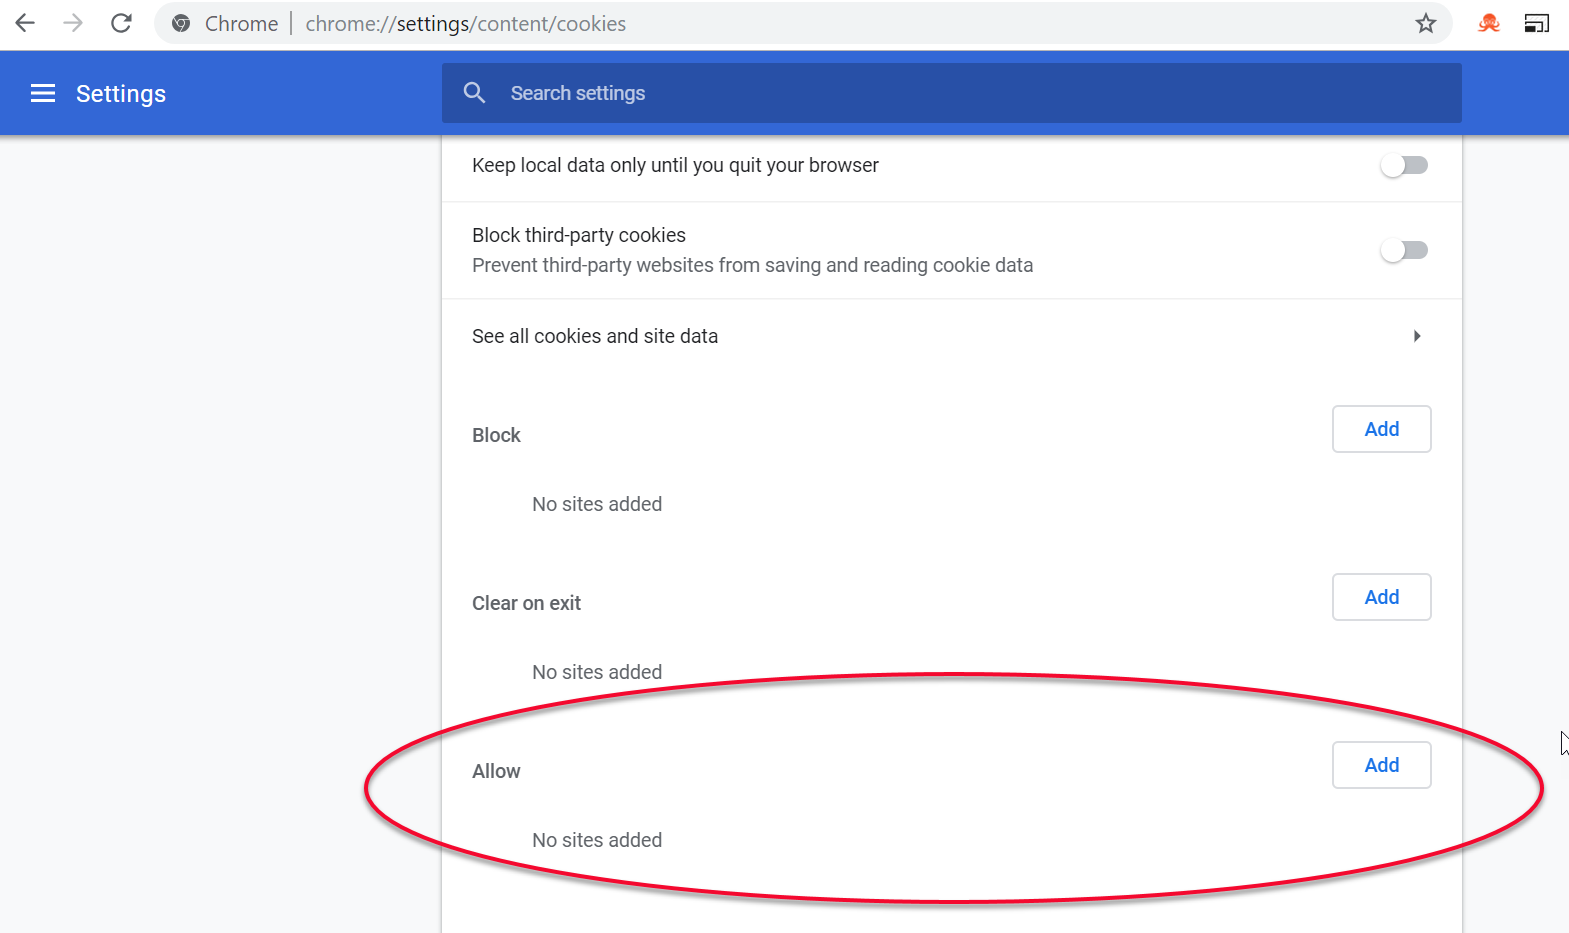 Chrome cookie settings - Allow text field